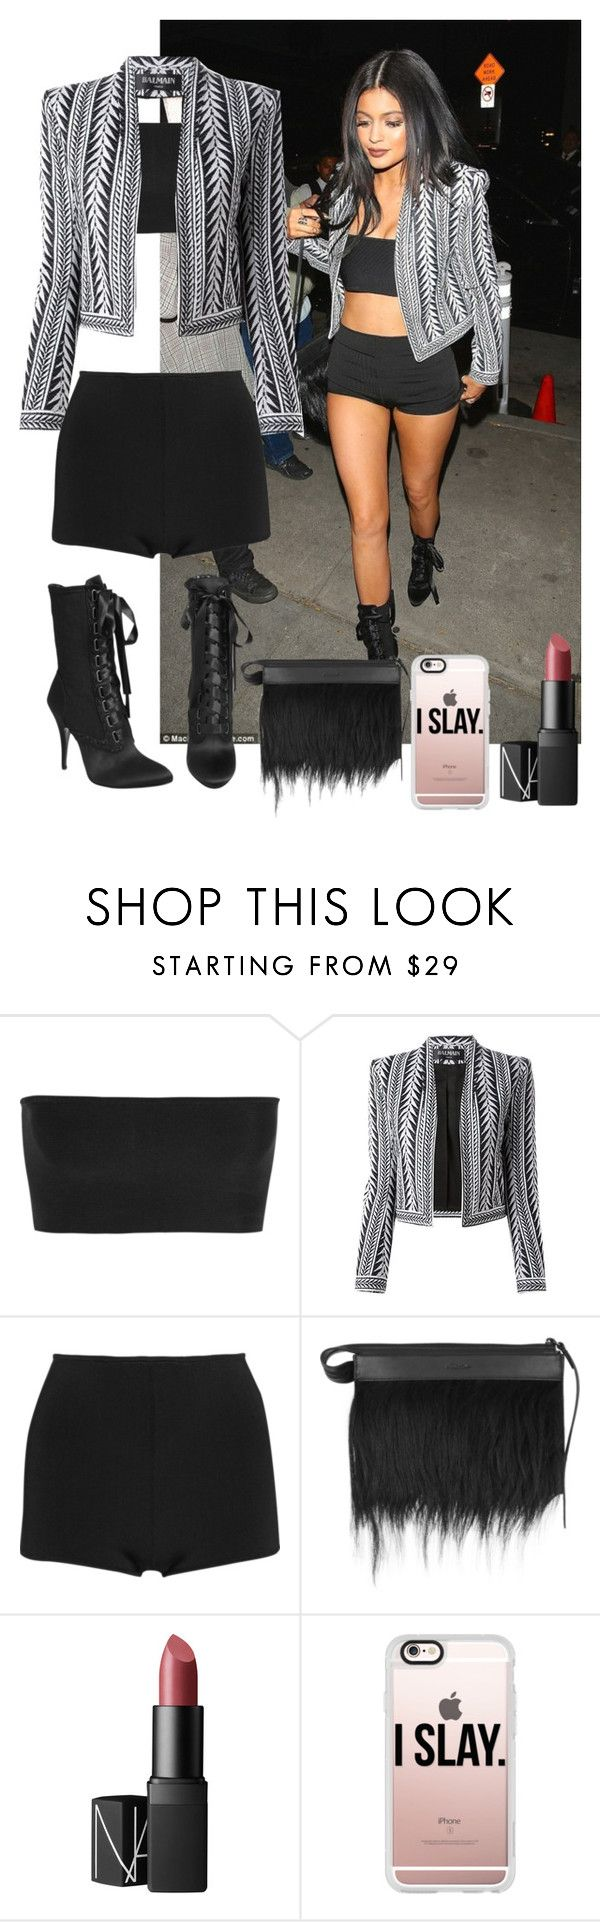 """""""Uber Everywhere-with them Kylie Jenner lips"""" by nasza100 ❤ liked on Polyvore featuring beauty, Balmain, Giuseppe Zanotti, 3.1 Phillip Lim, NARS Cosmetics and Casetify"""